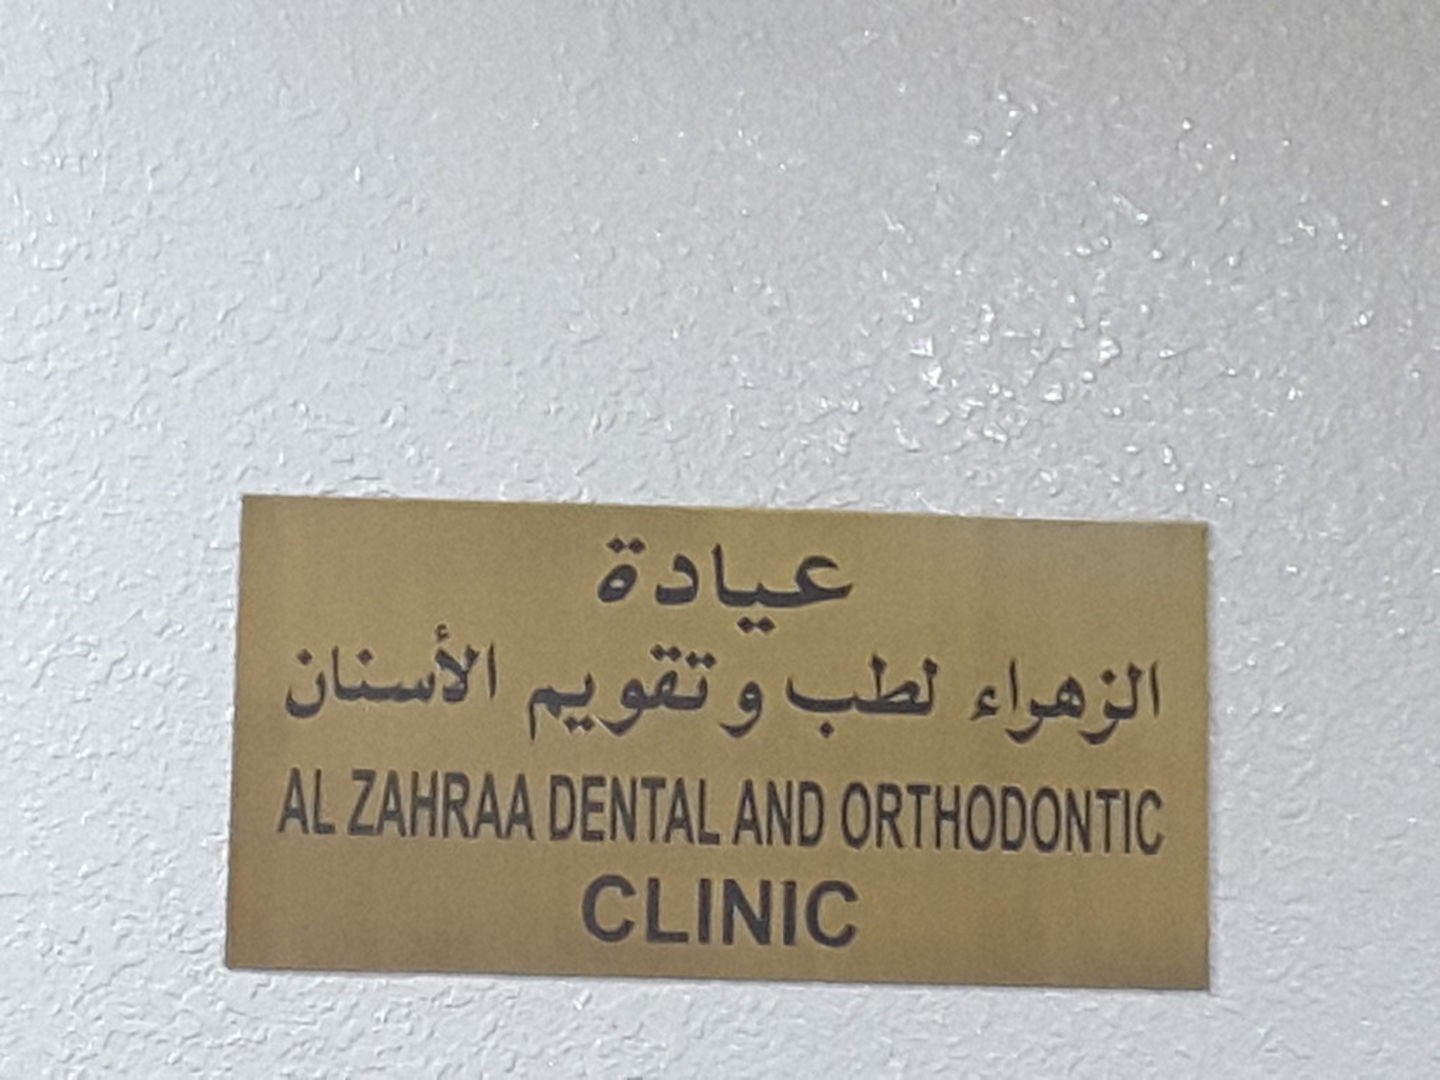 HiDubai-business-al-zahraa-dental-and-orthodontic-clinic-beauty-wellness-health-hospitals-clinics-al-muraqqabat-dubai-2